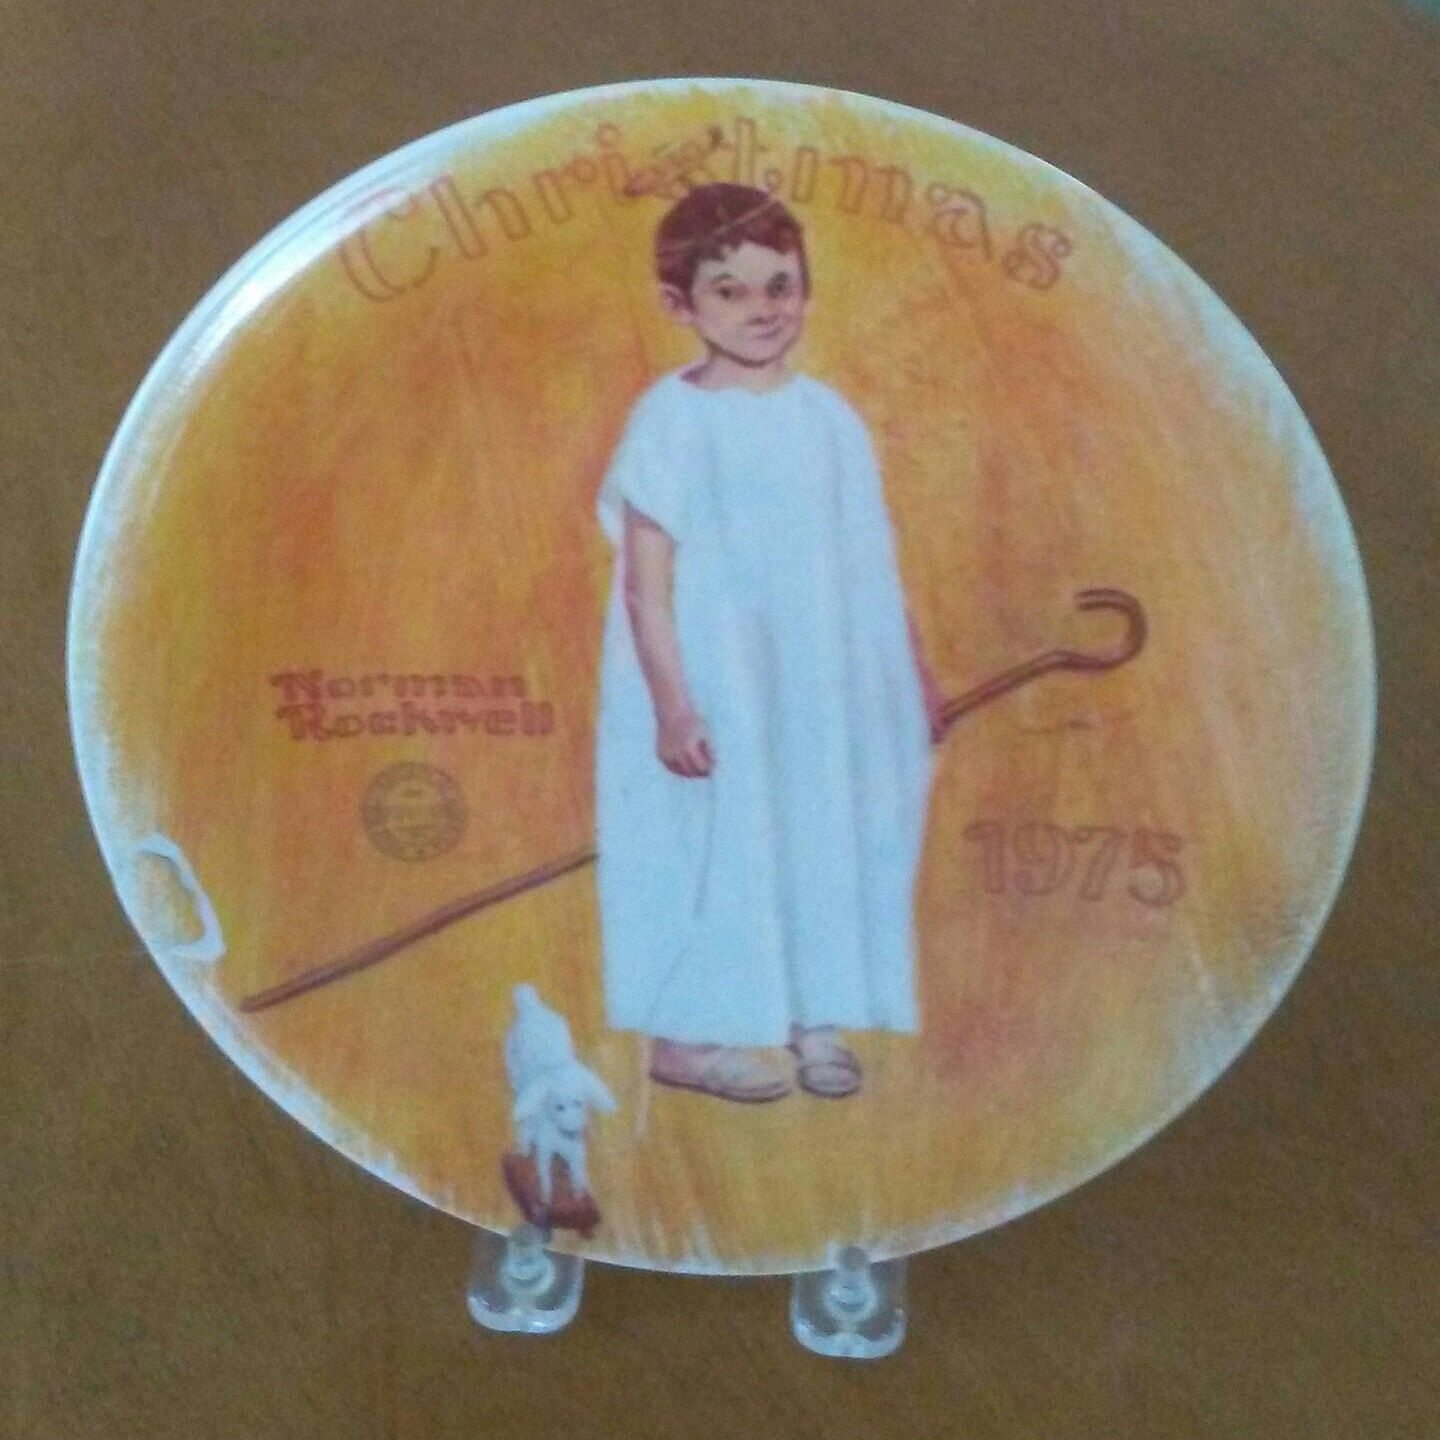 Norman Rockwell Christmas plate for sale in our online Etsy shop ...